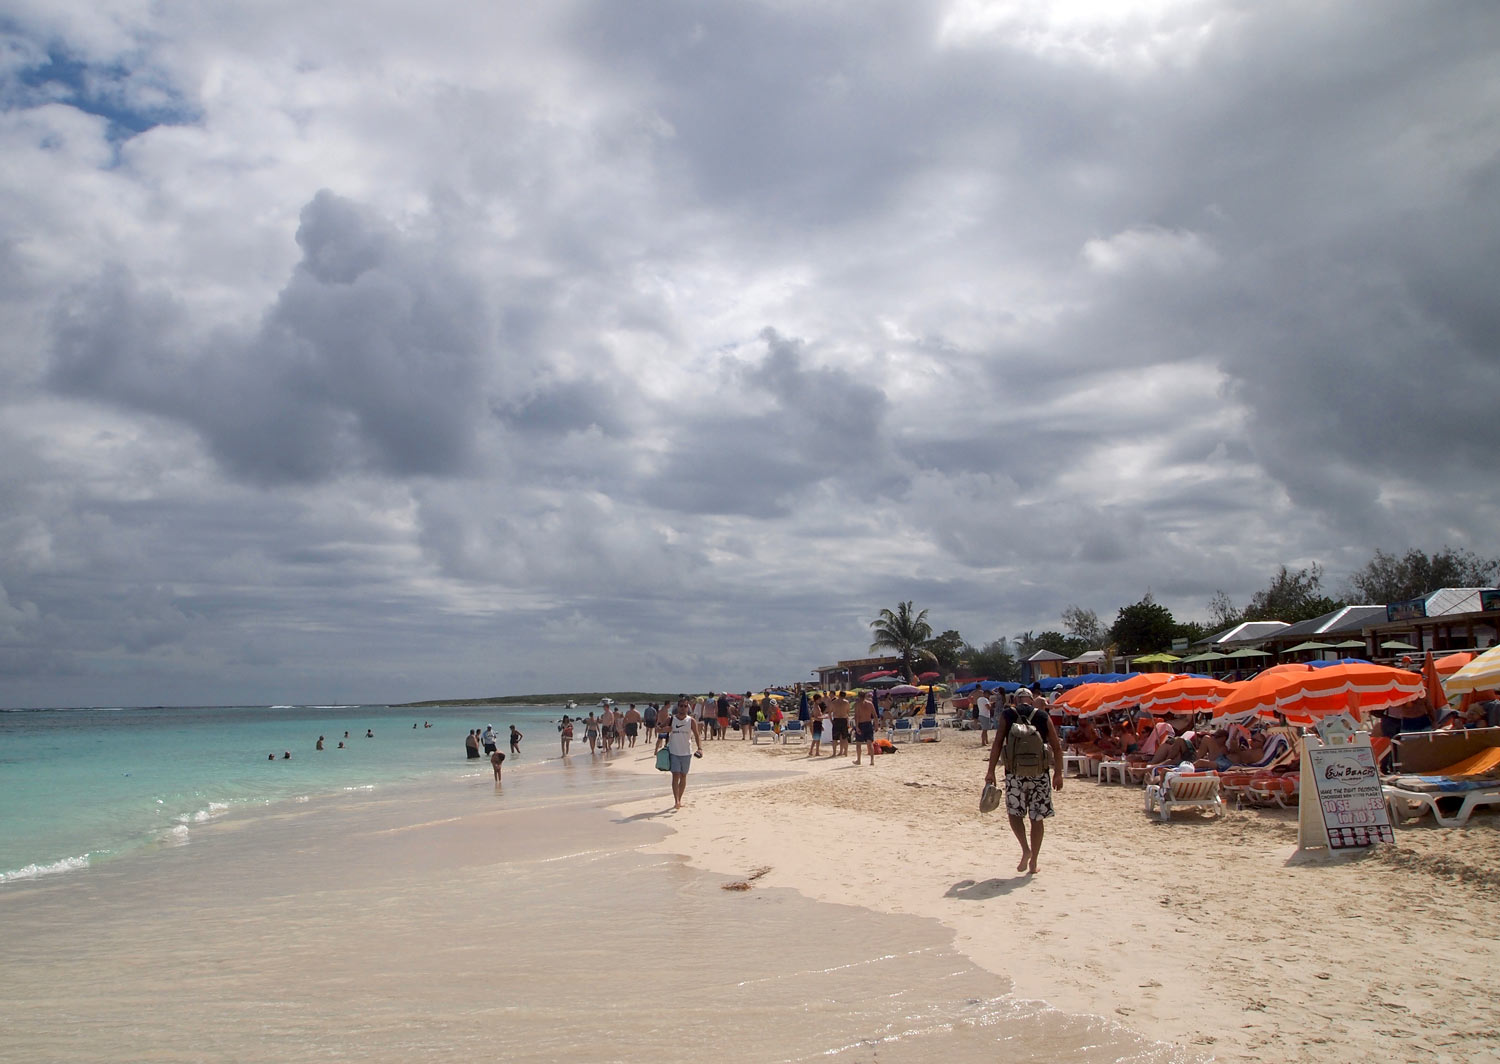 Saint-Martin-Orient-Beach-before-Hurricane-Irma.jpg